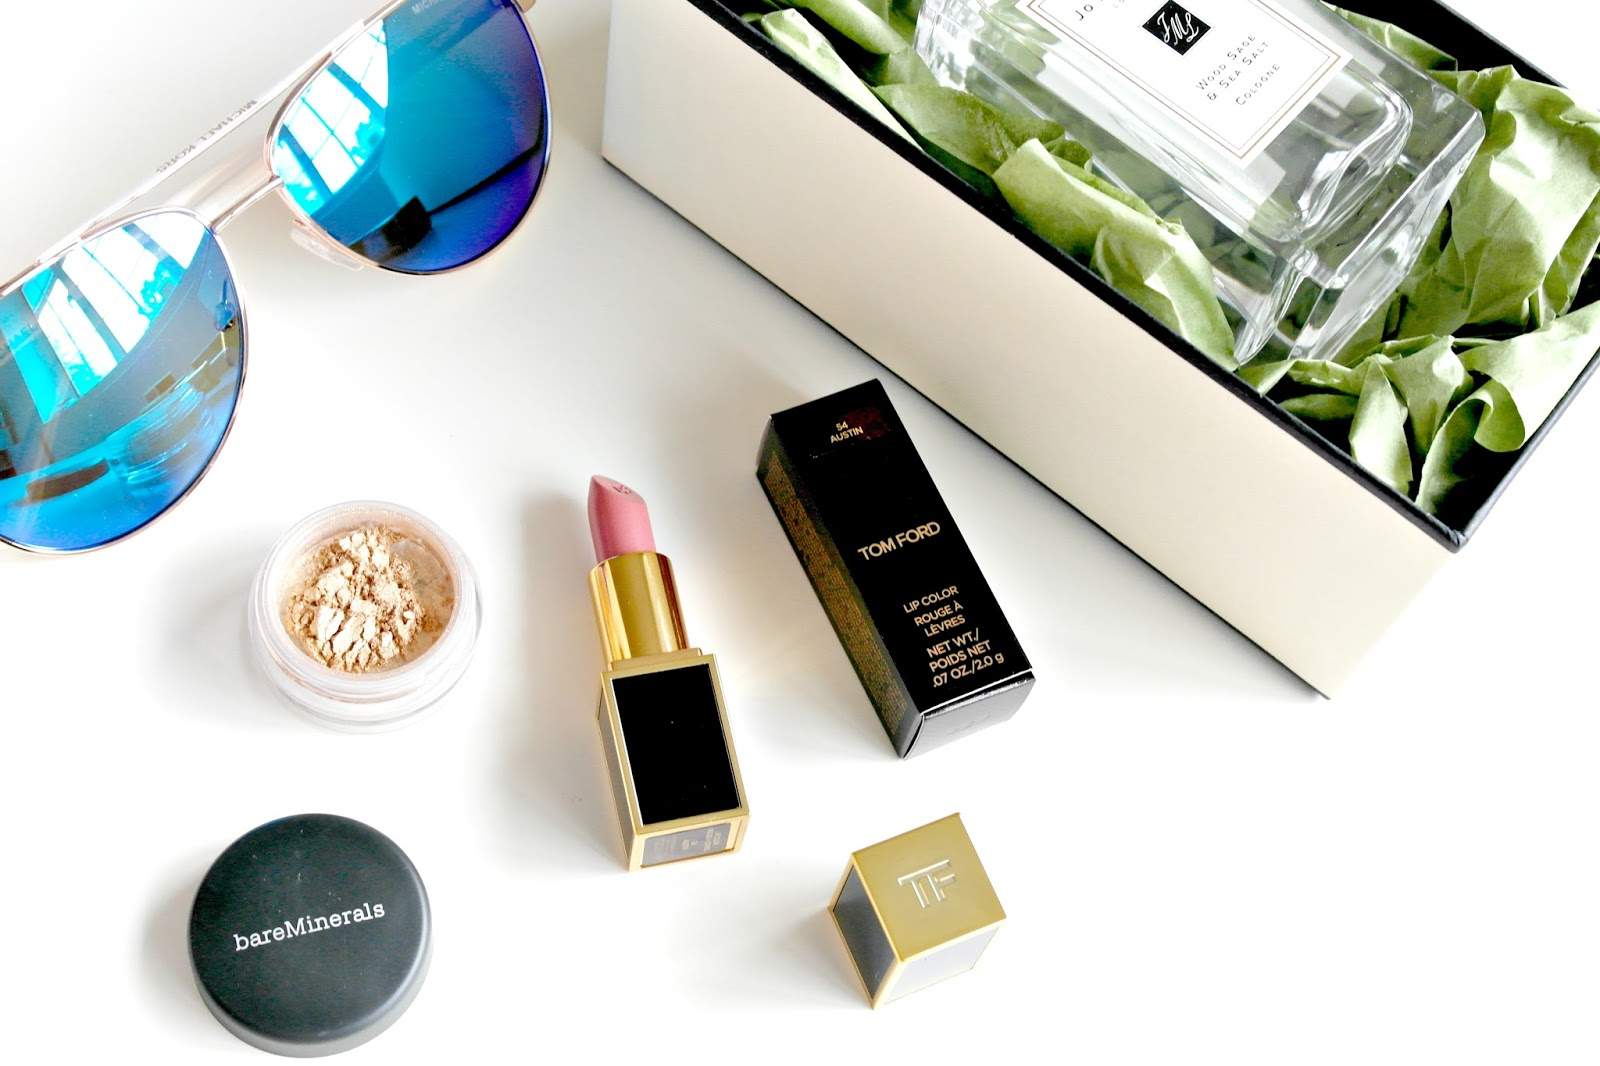 heathrow duty free, jo malone, michael kors, tom ford, bare minerals, beauty blog